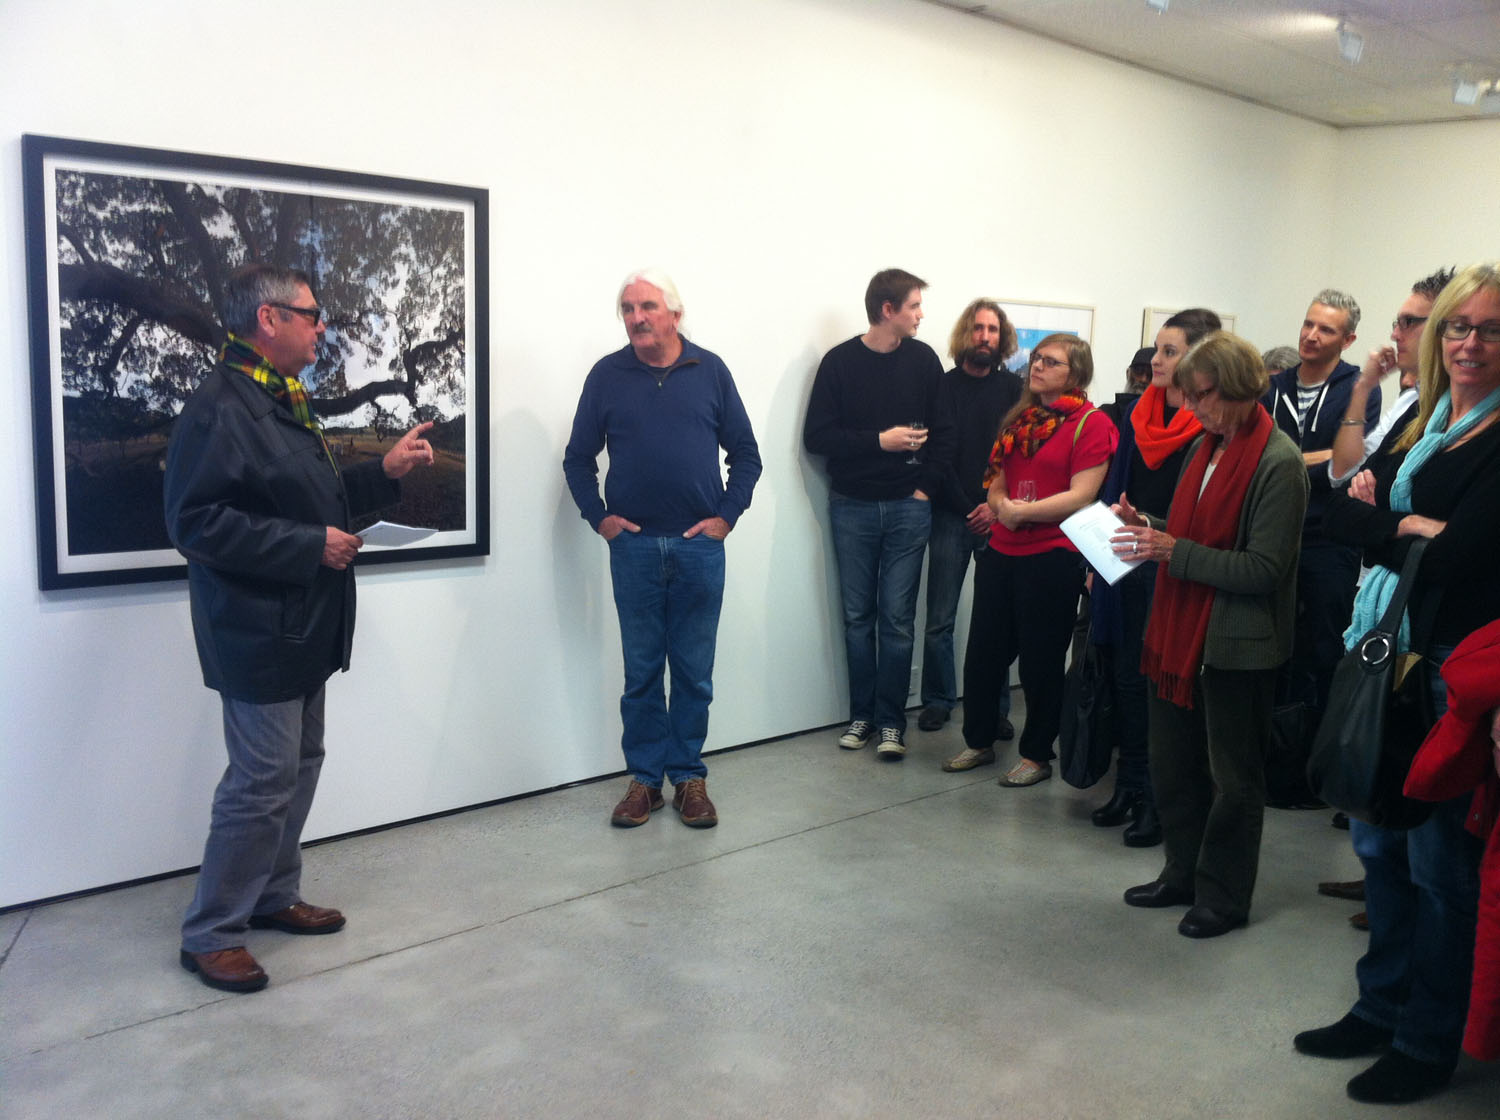 Ian Macdonald discusses his work with Ron Brownson